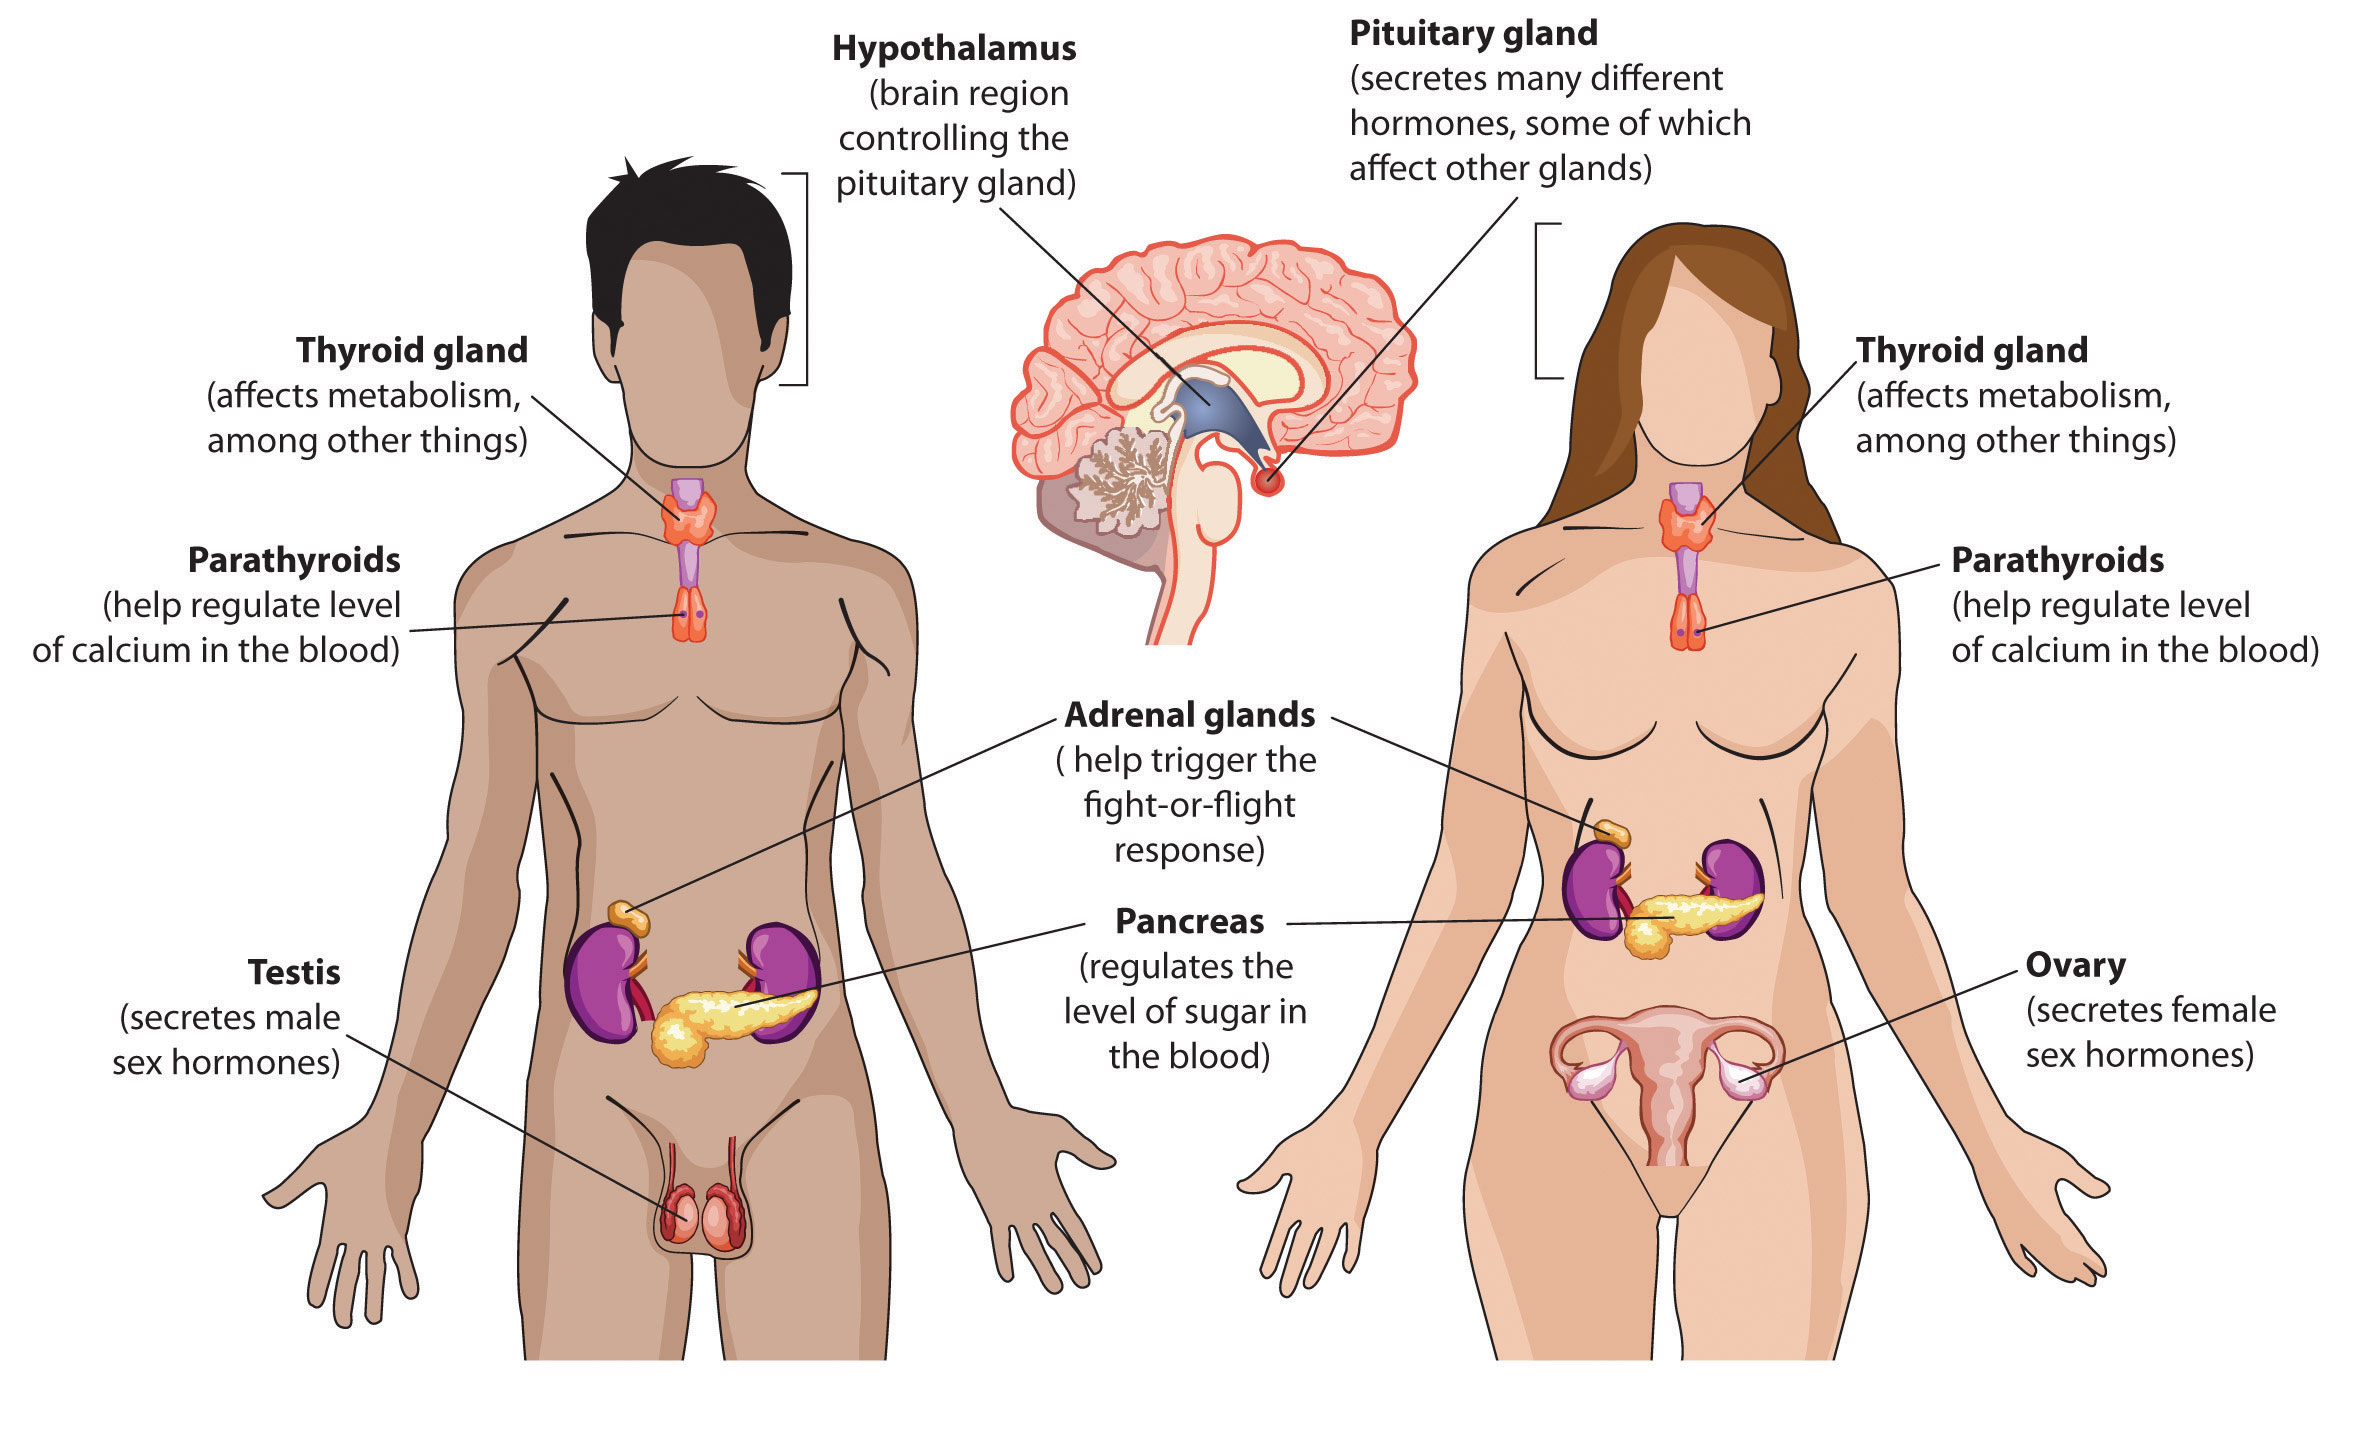 endocrine system effects of hormones on metabolic rate chart